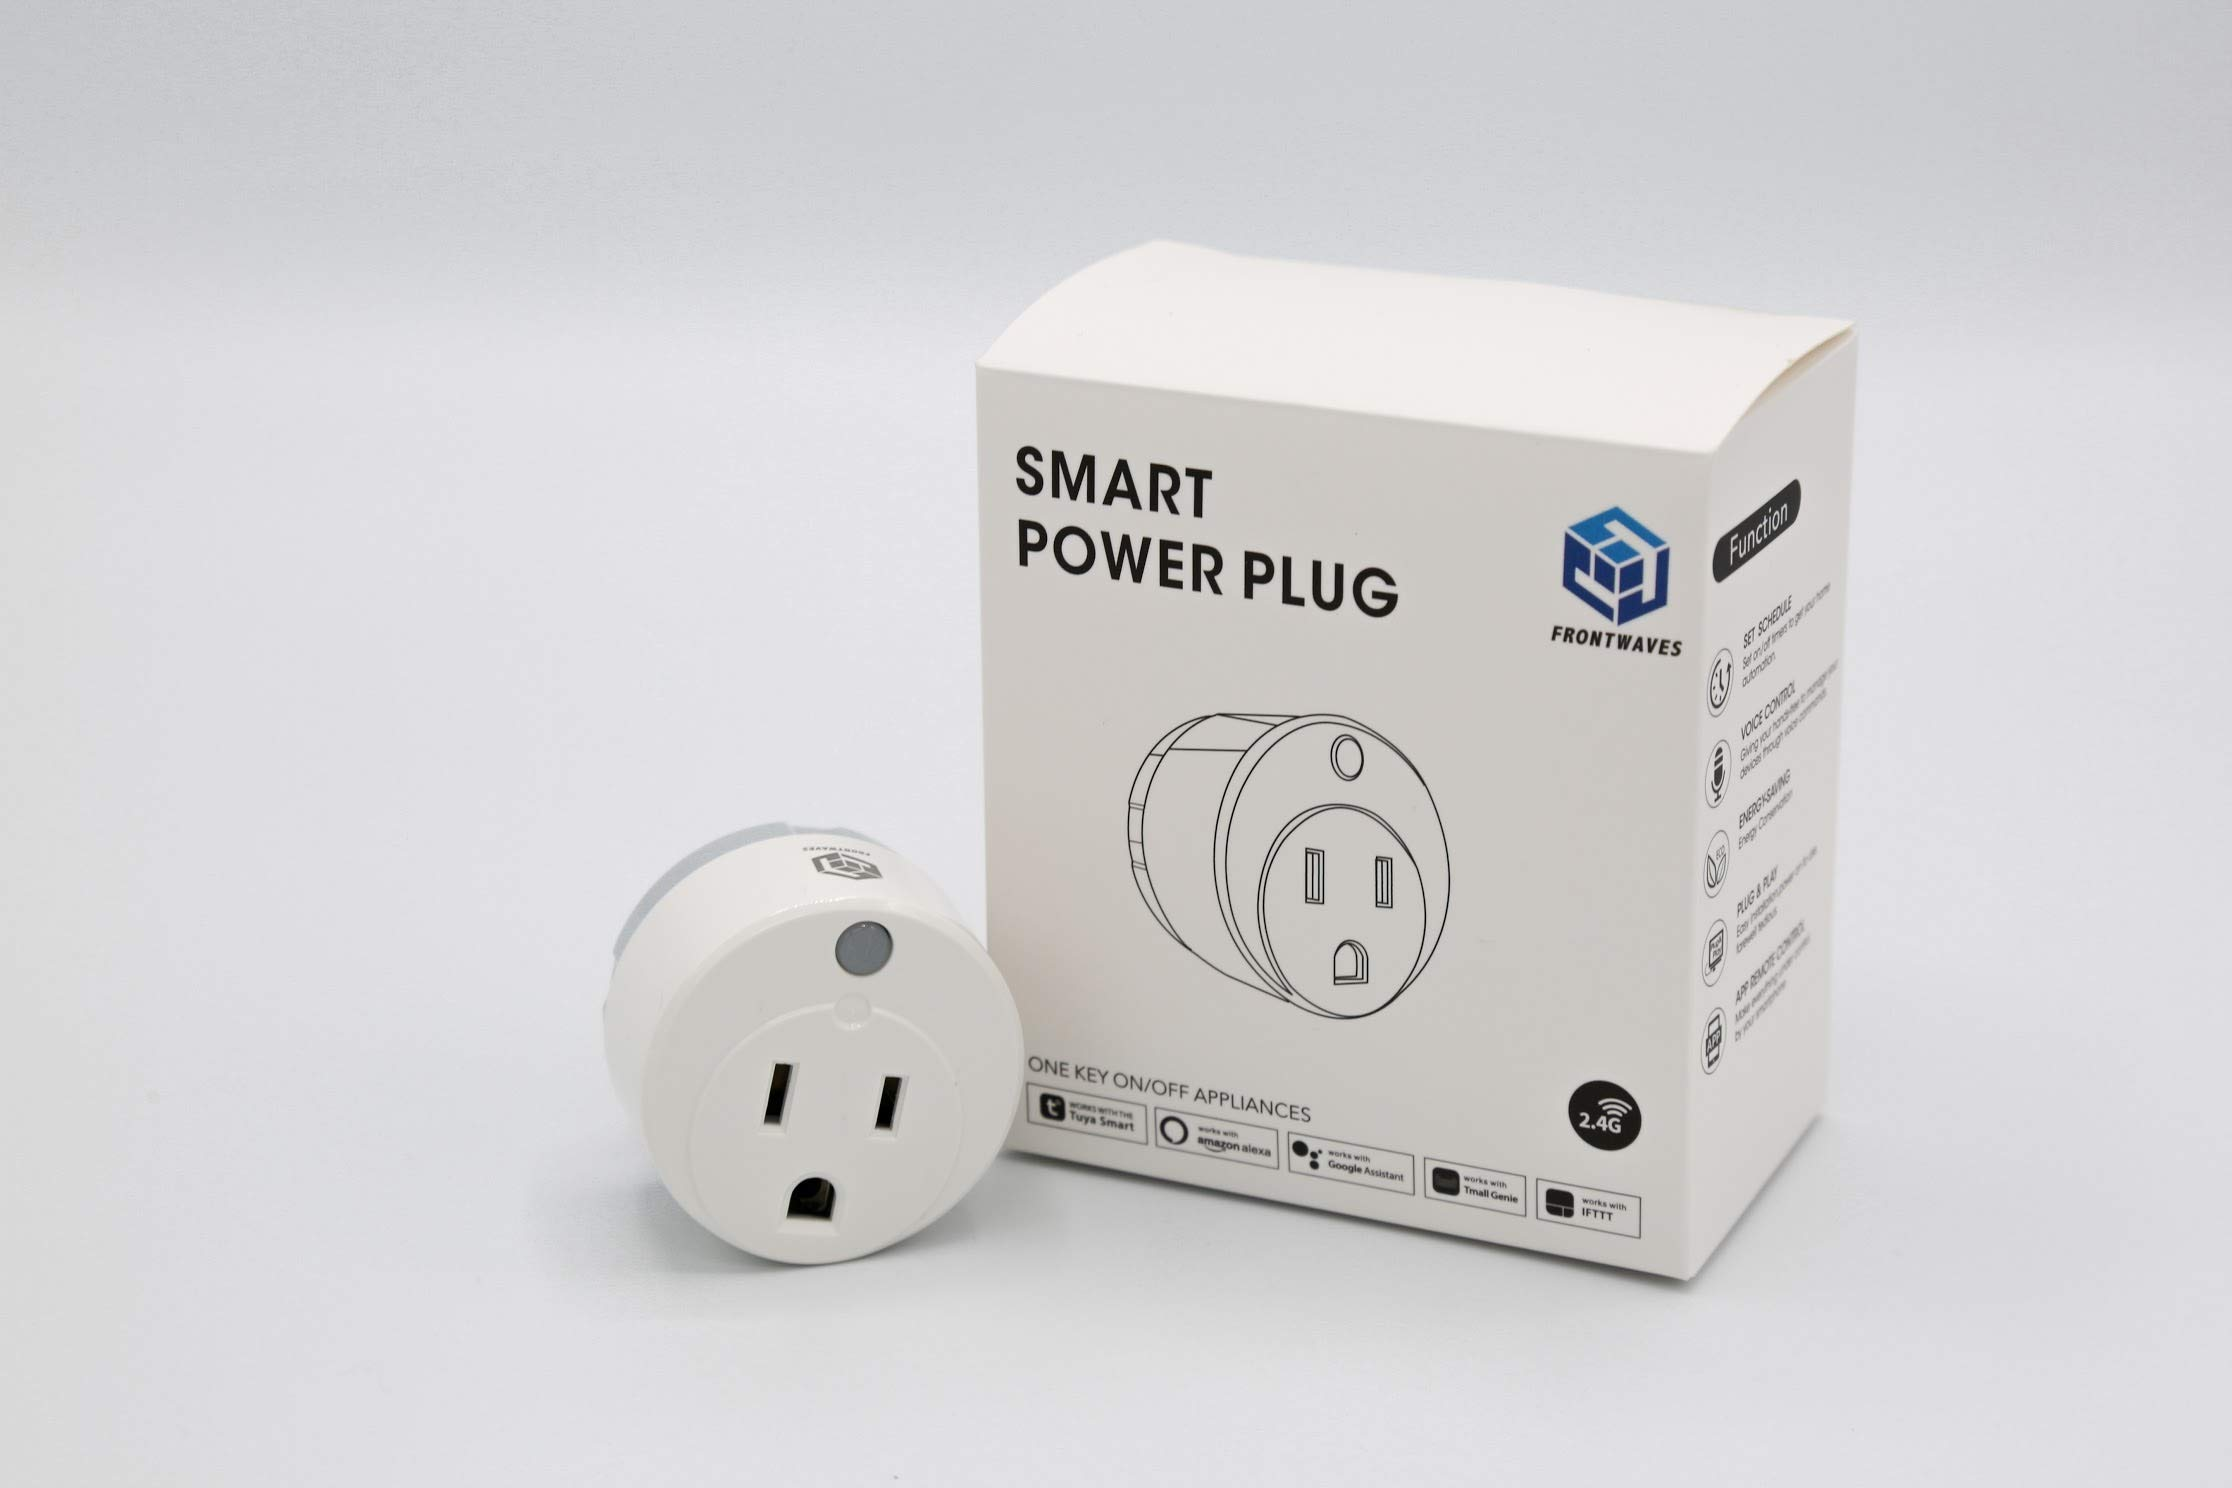 WiFi Smart Plug | Offset Socket Works with Amazon Alexa & Google Home | Wireless Remote Control Outlet | No Hub Required | Timer for Devices, Lights & Appliances